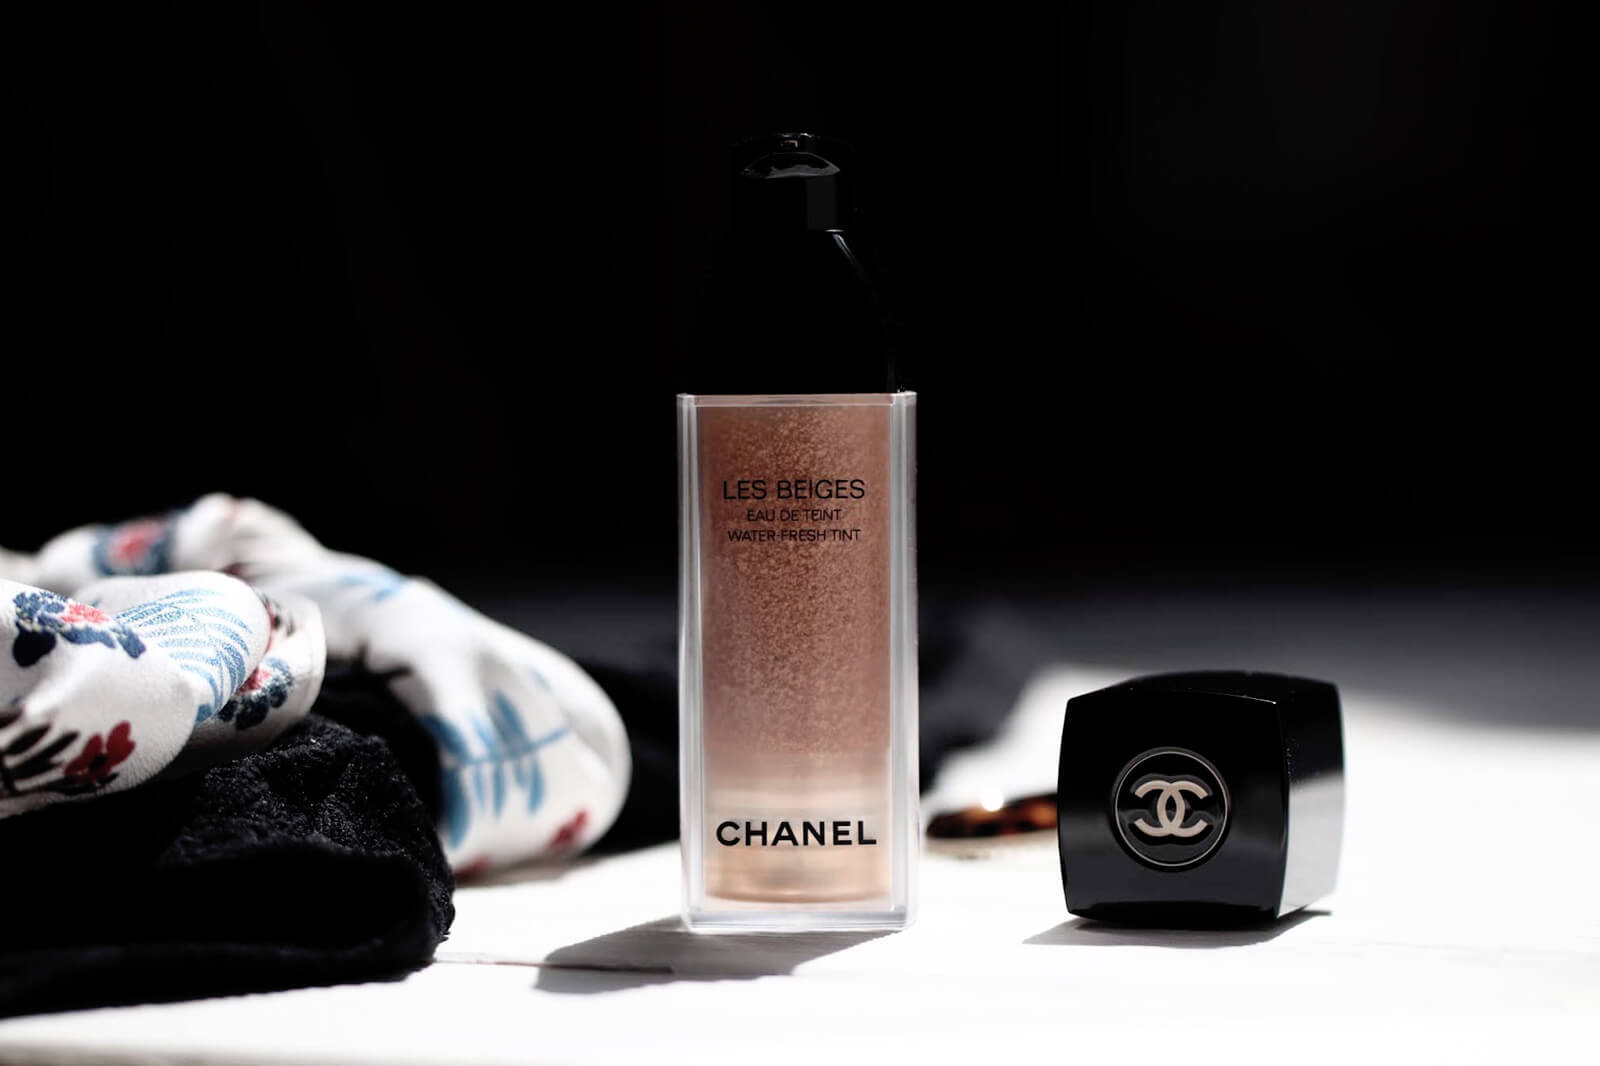 chanel-les-beiges-eau-de-teint-avis-test-light-swatch